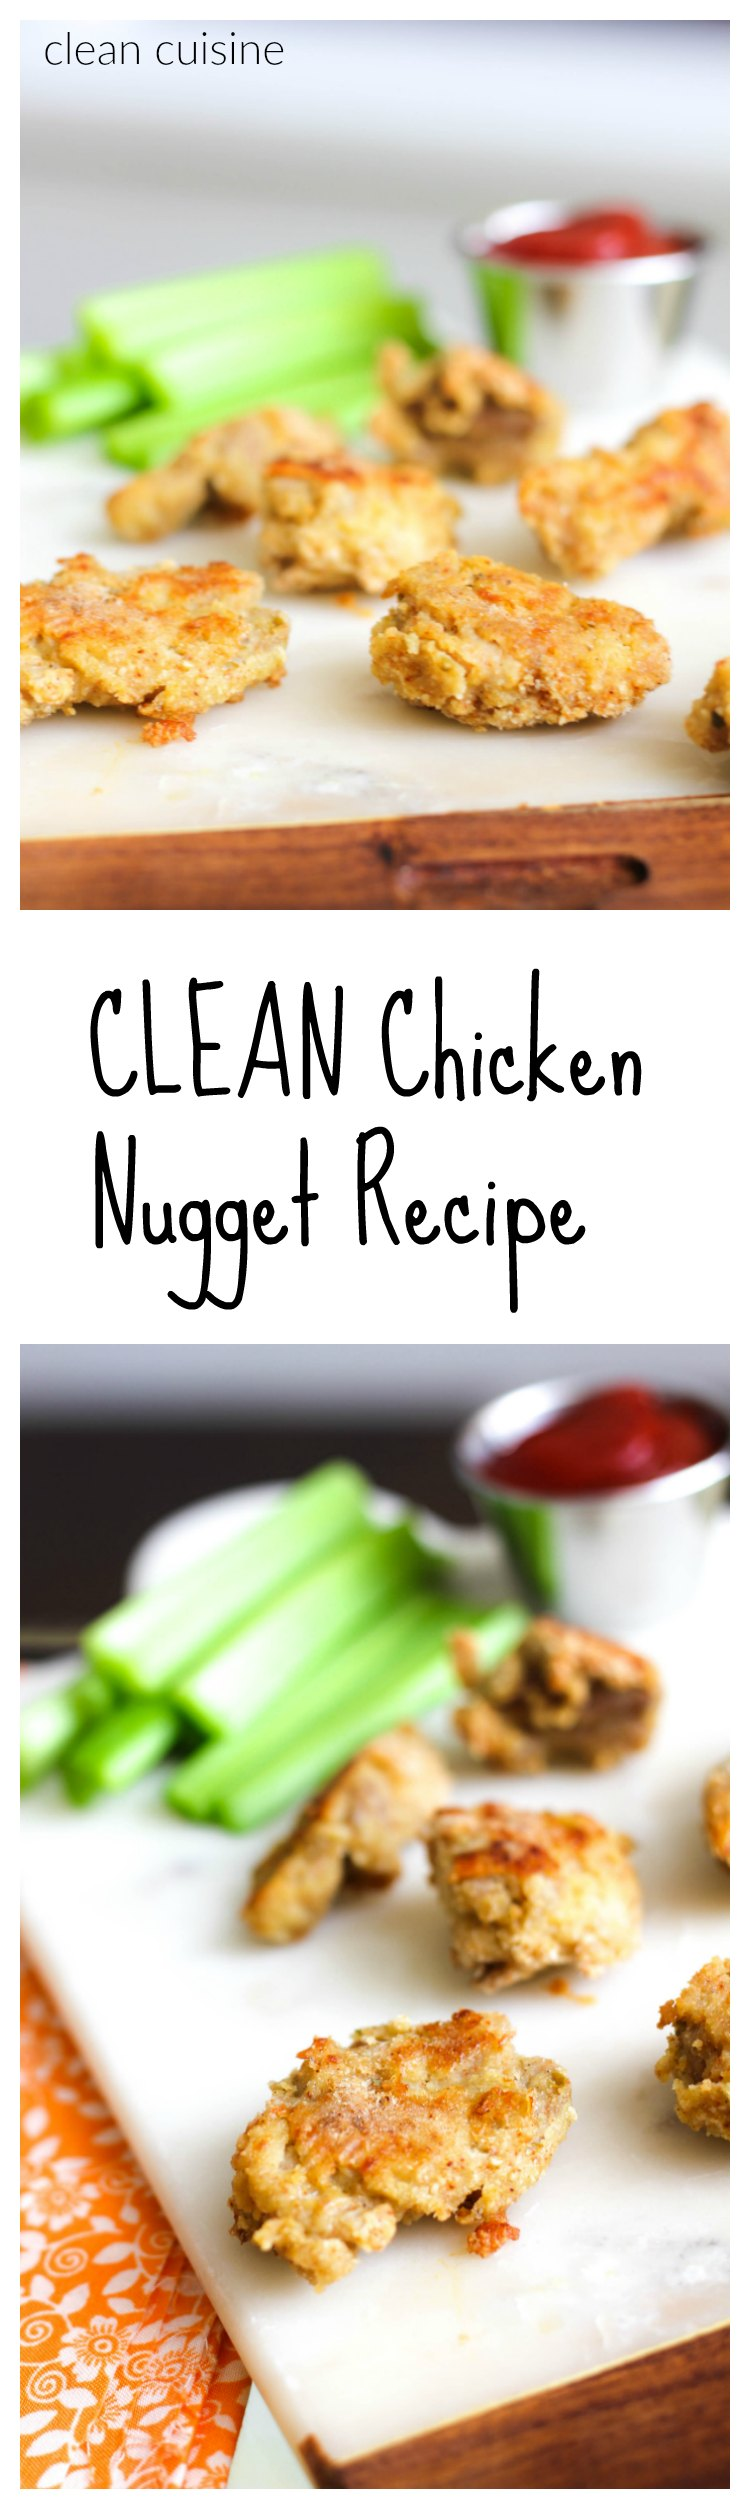 Recipe for Chicken Nuggets